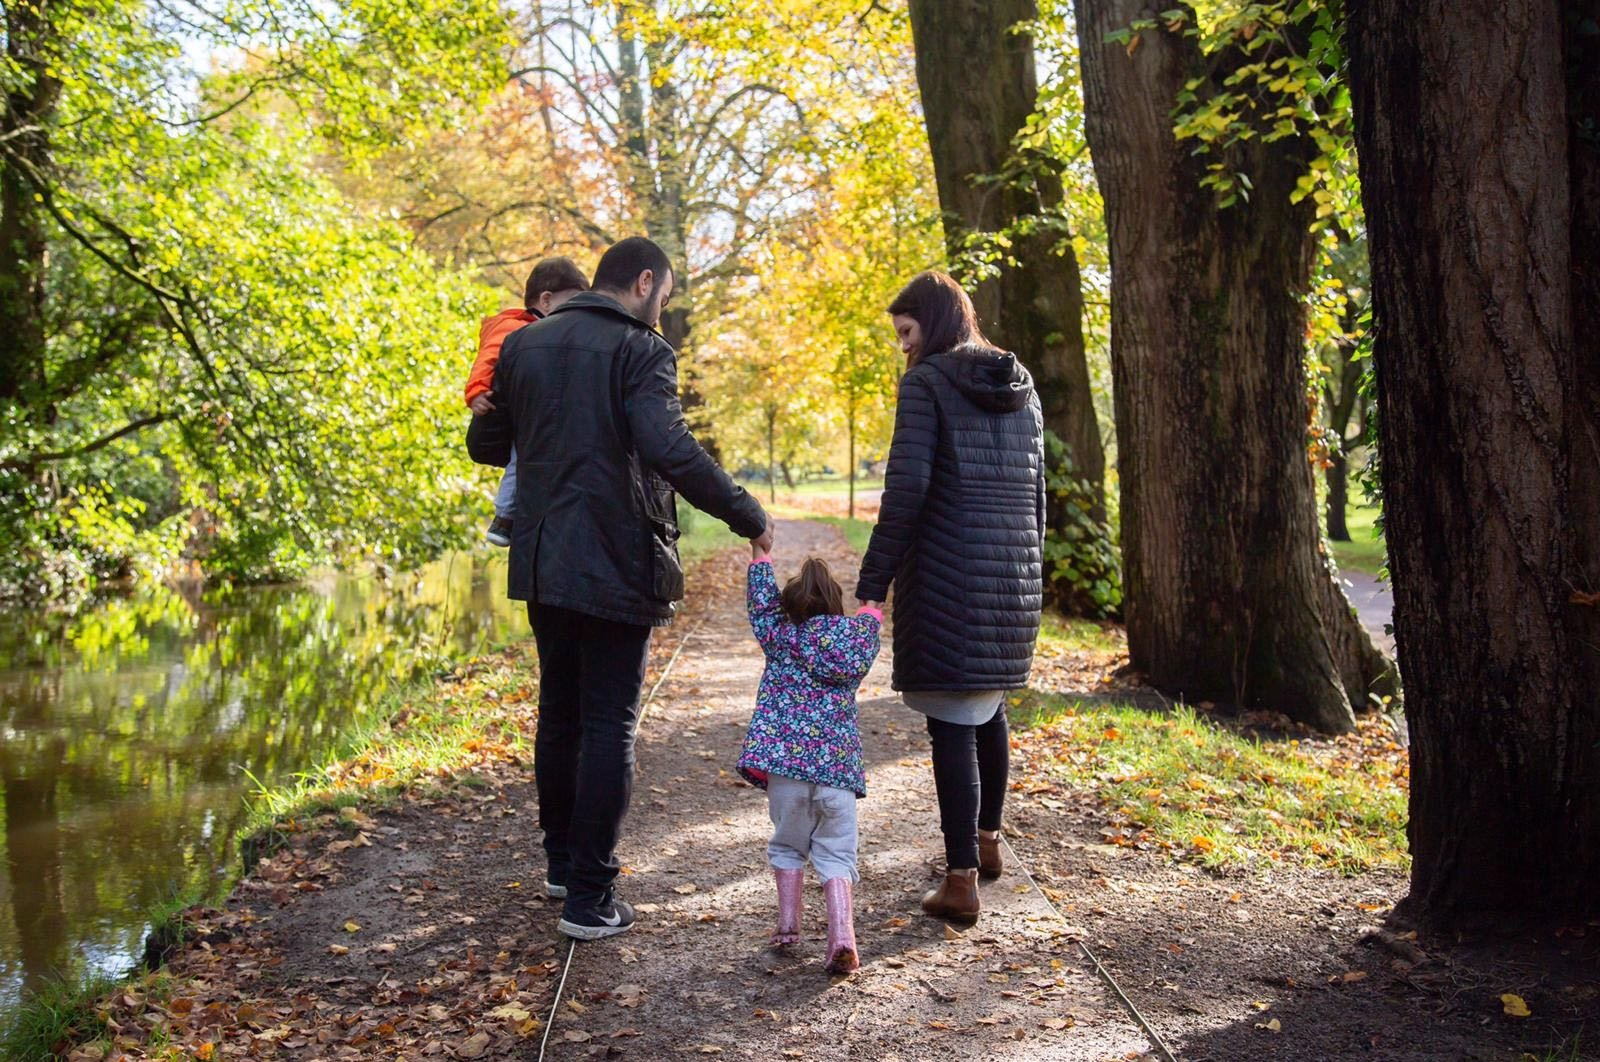 Abdullah Çelik and his family are having a walk in a park in Cardiff, U.K. (Photo by Sarah Steil)